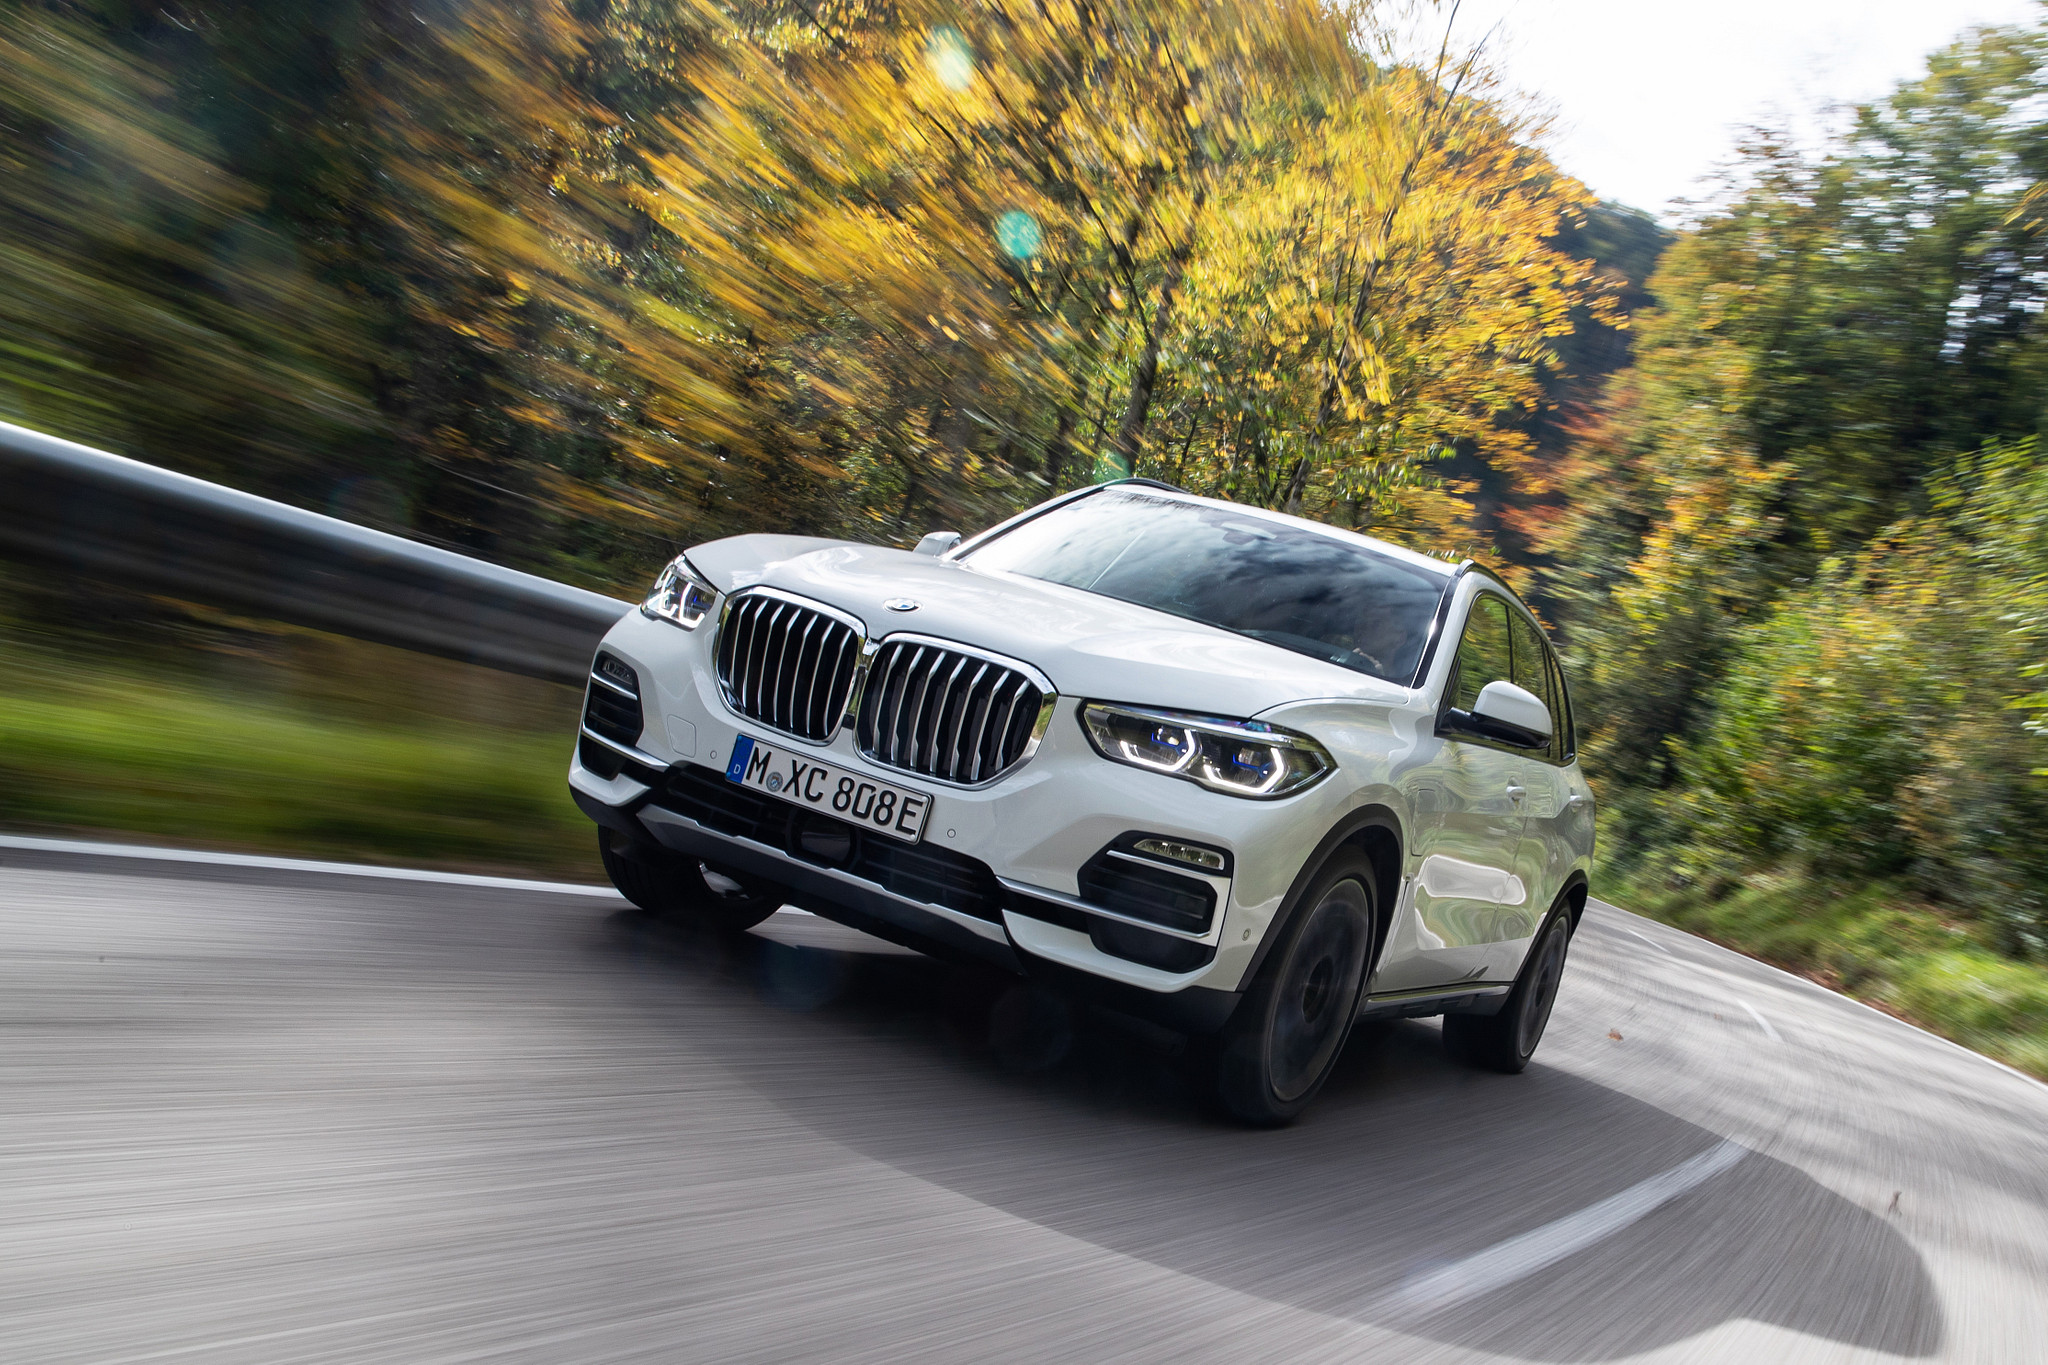 2021 BMW X5 Plug-In Hybrid Returns at Long Last With More Juice, More Pep, More EV Range